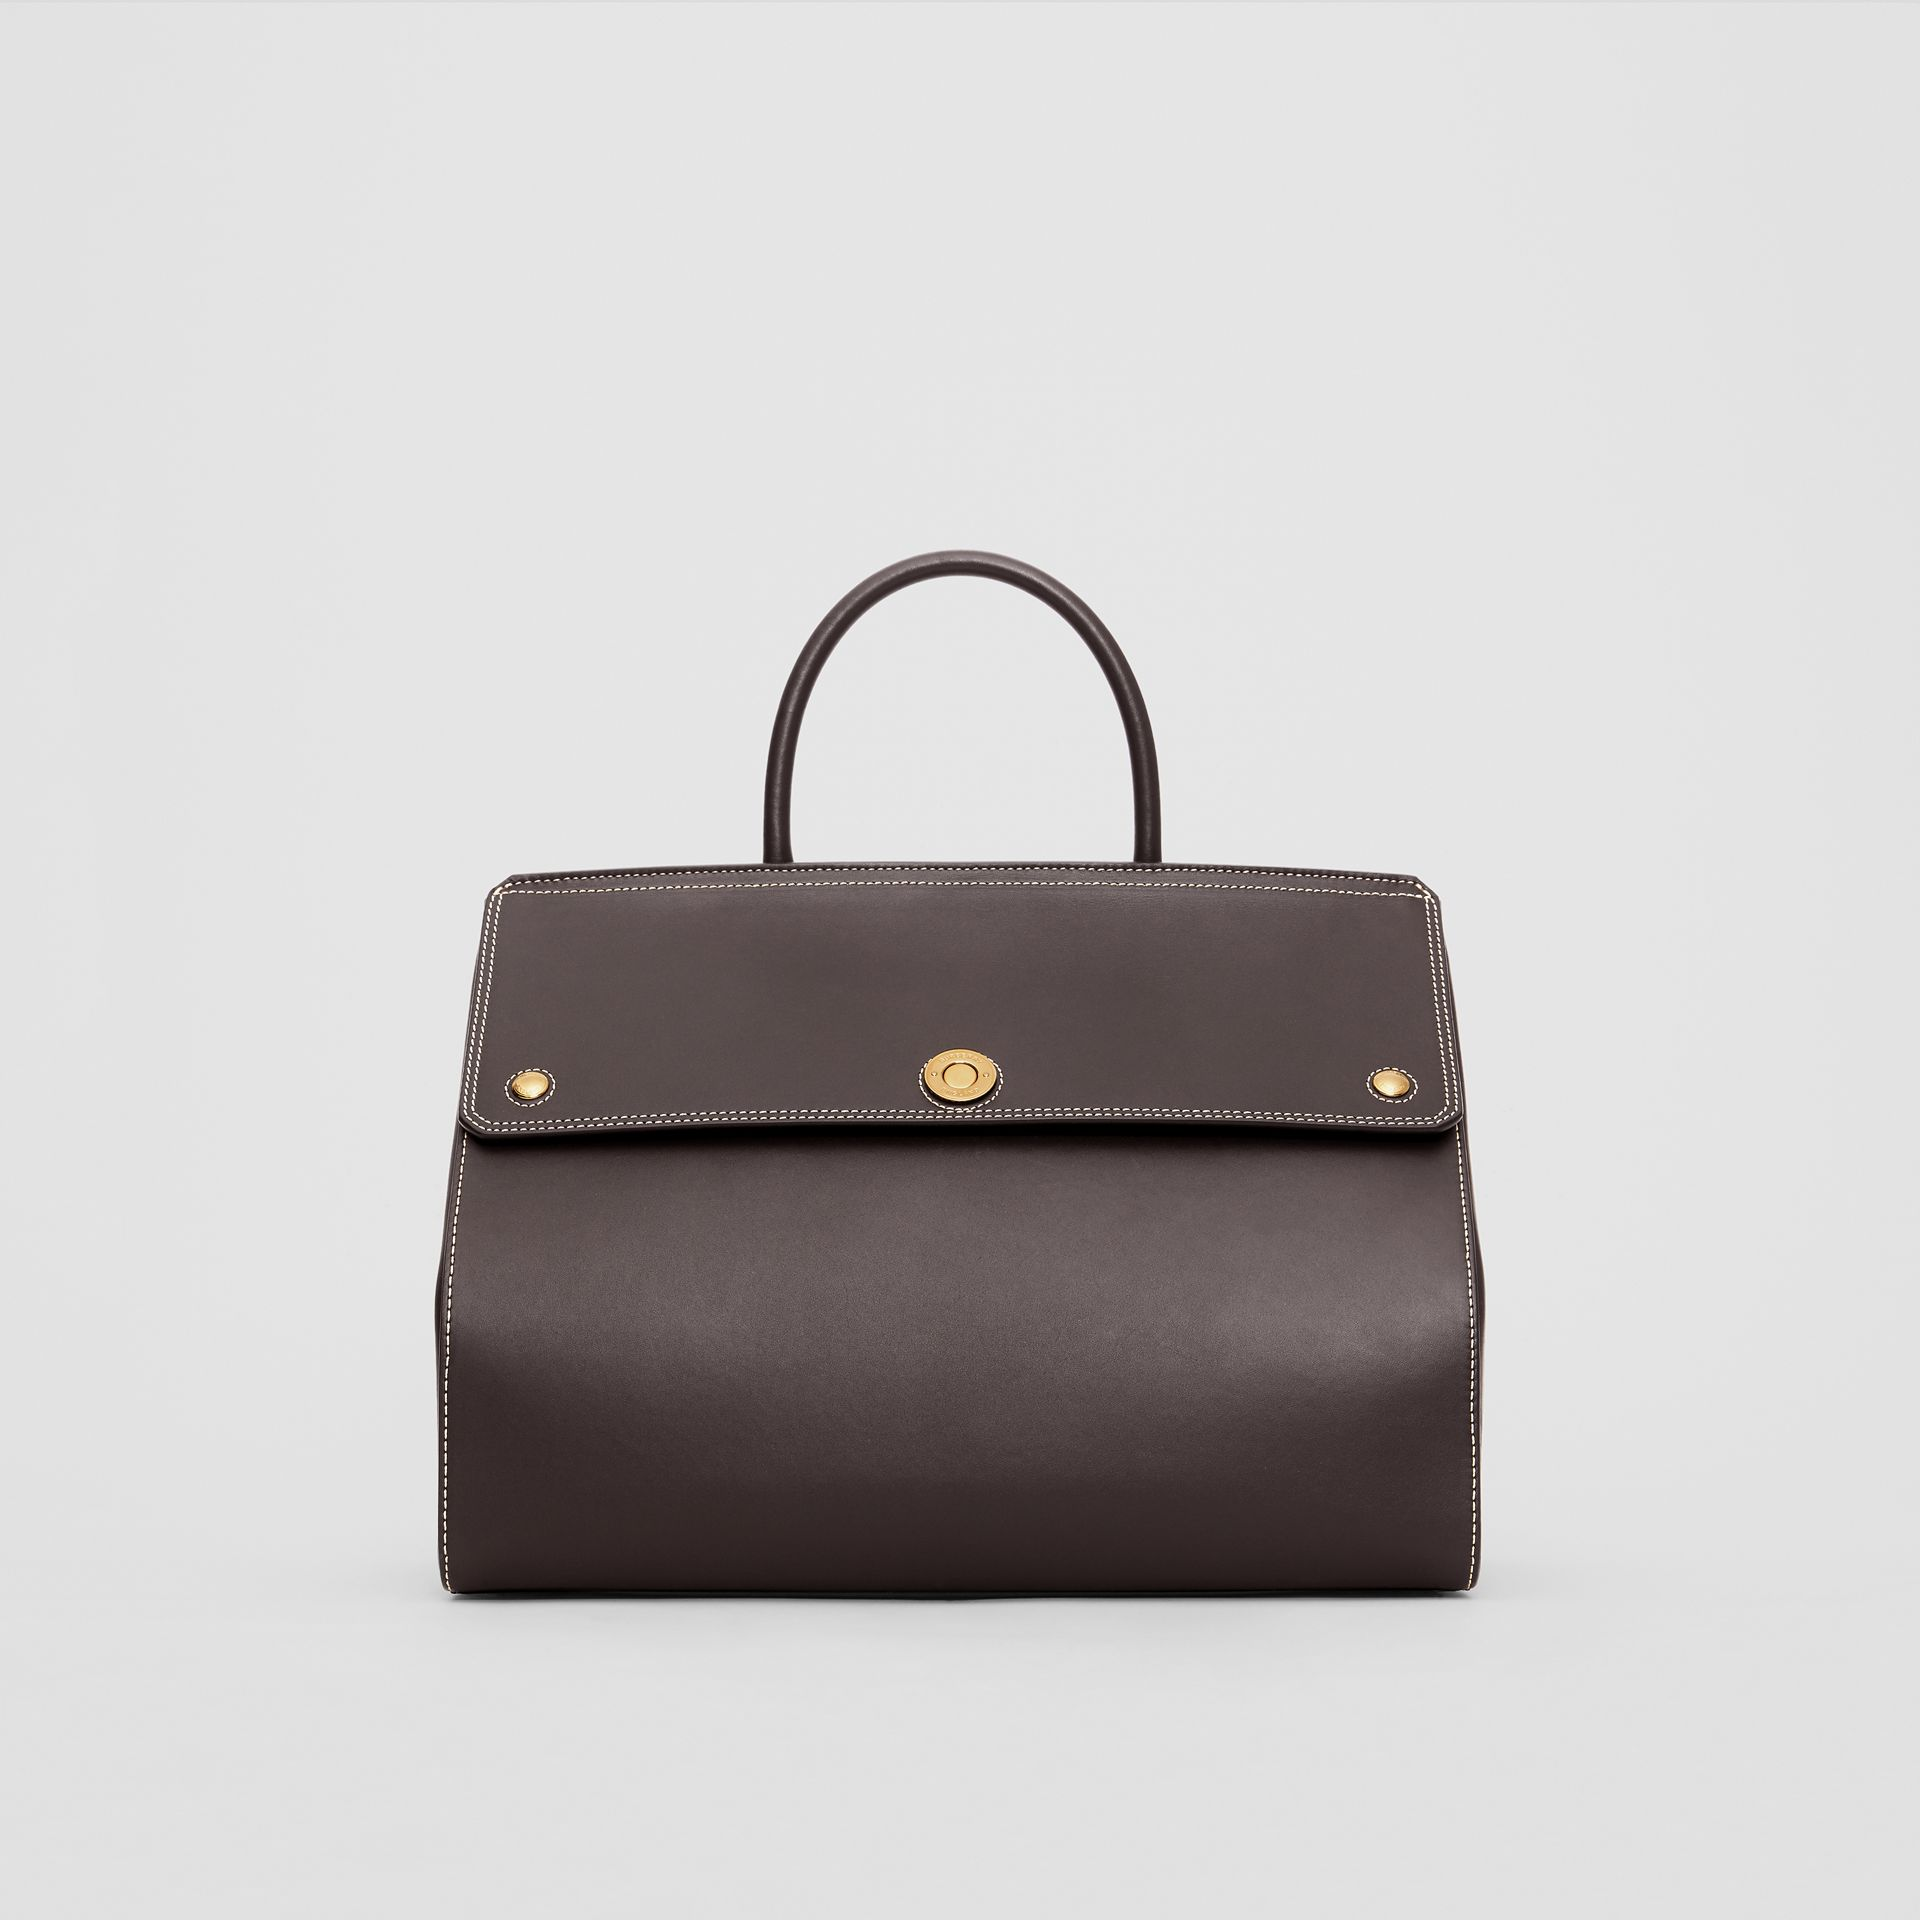 Medium Leather Elizabeth Bag in Coffee - Women | Burberry Canada - gallery image 0